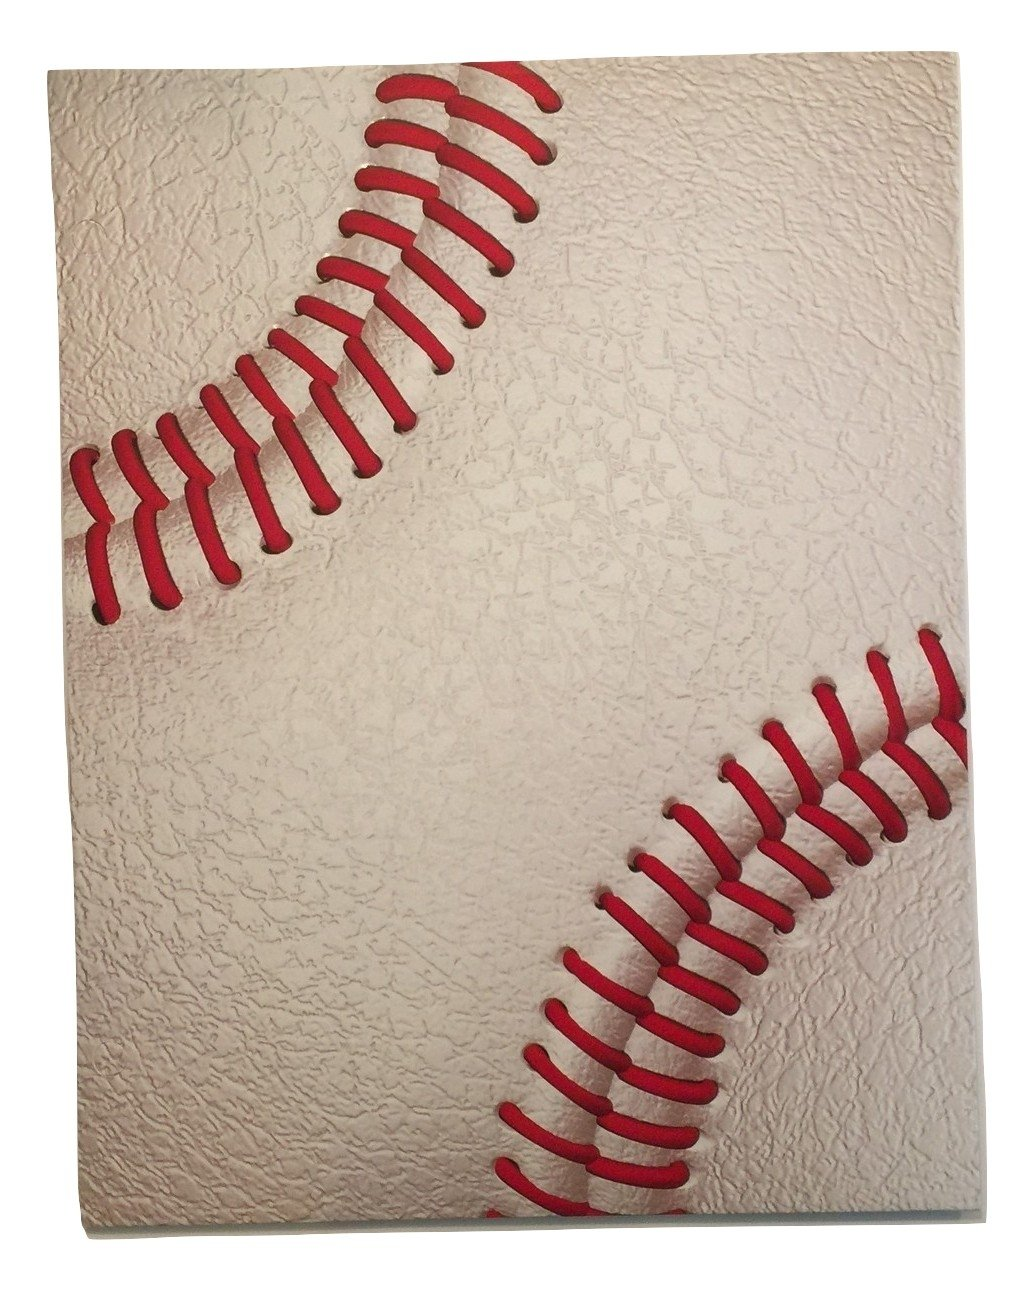 Promarx Two Pocket 3D Sports Folder ~ Baseball (Cowhide and Seam)